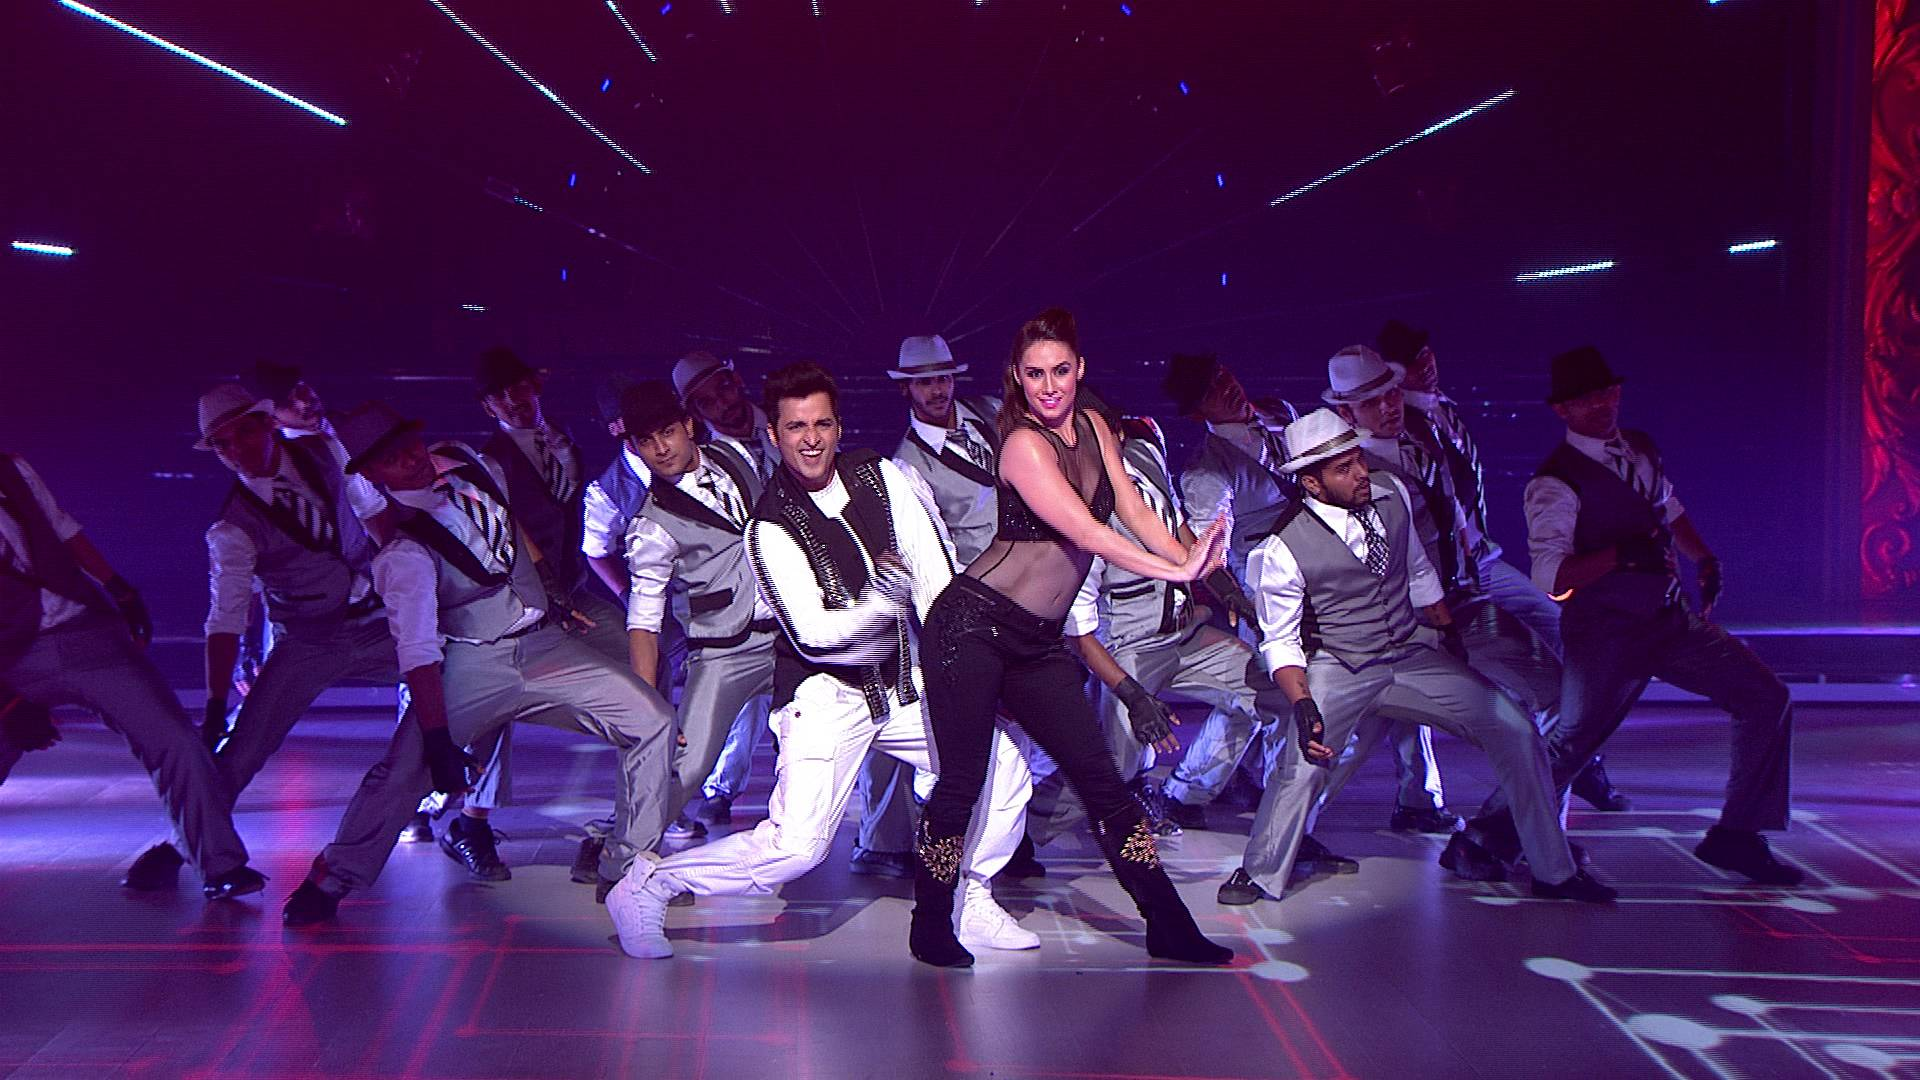 Jhalak Reloaded: Ganesh and Lauren's double whammy in the opening act of Jhalak!